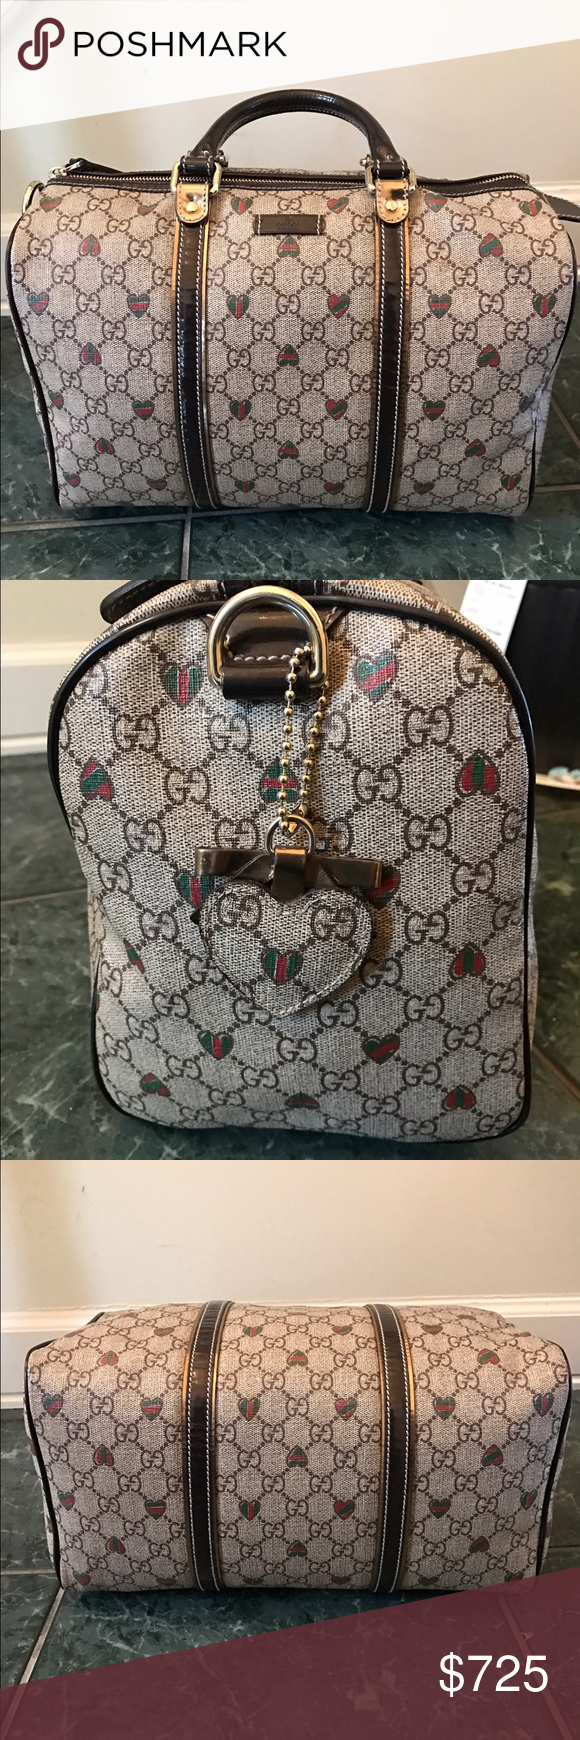 f6d33bf470f Gucci Heart Tattoo Boston Bag Authentic Gucci Heart Tattoo Handbag in  excellent preloved condition